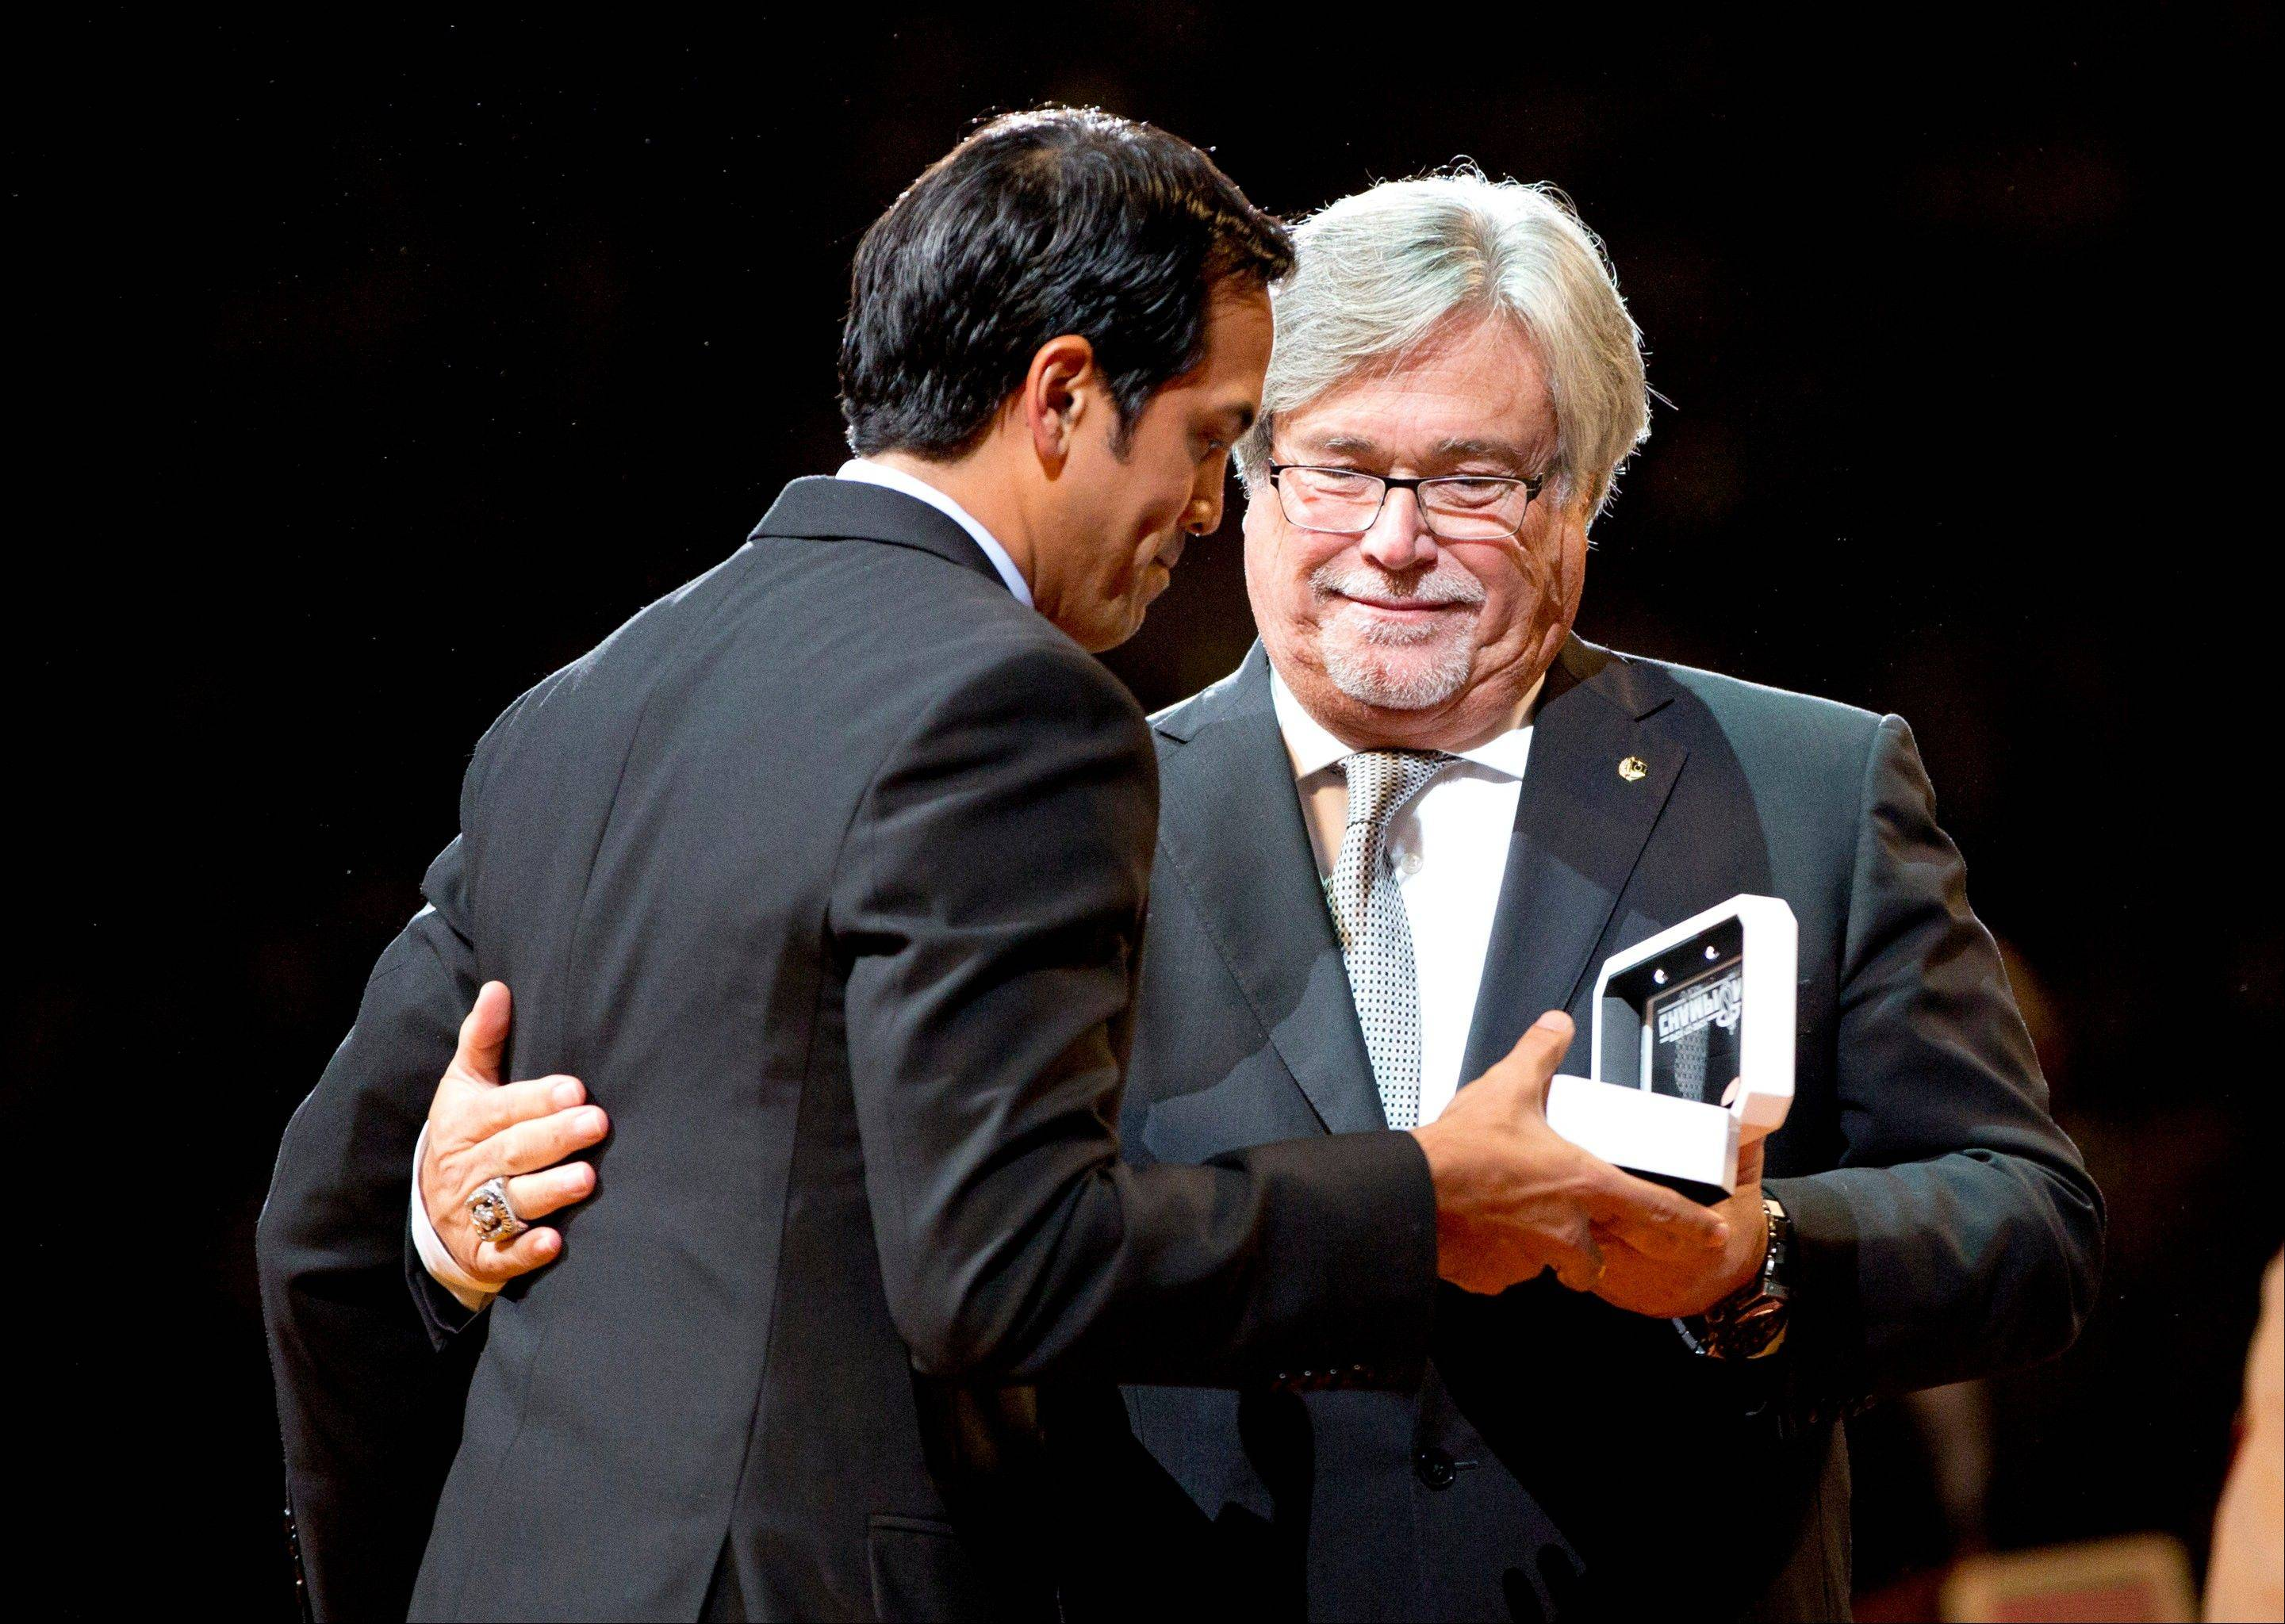 Miami Heat coach Erik Spoelstra, left, gets his championship ring from team owner Micky Arison, right, during a ceremony before their season-opening NBA basketball game against the Chicago Bulls, Tuesday, Oct. 29, 2013, in Miami.